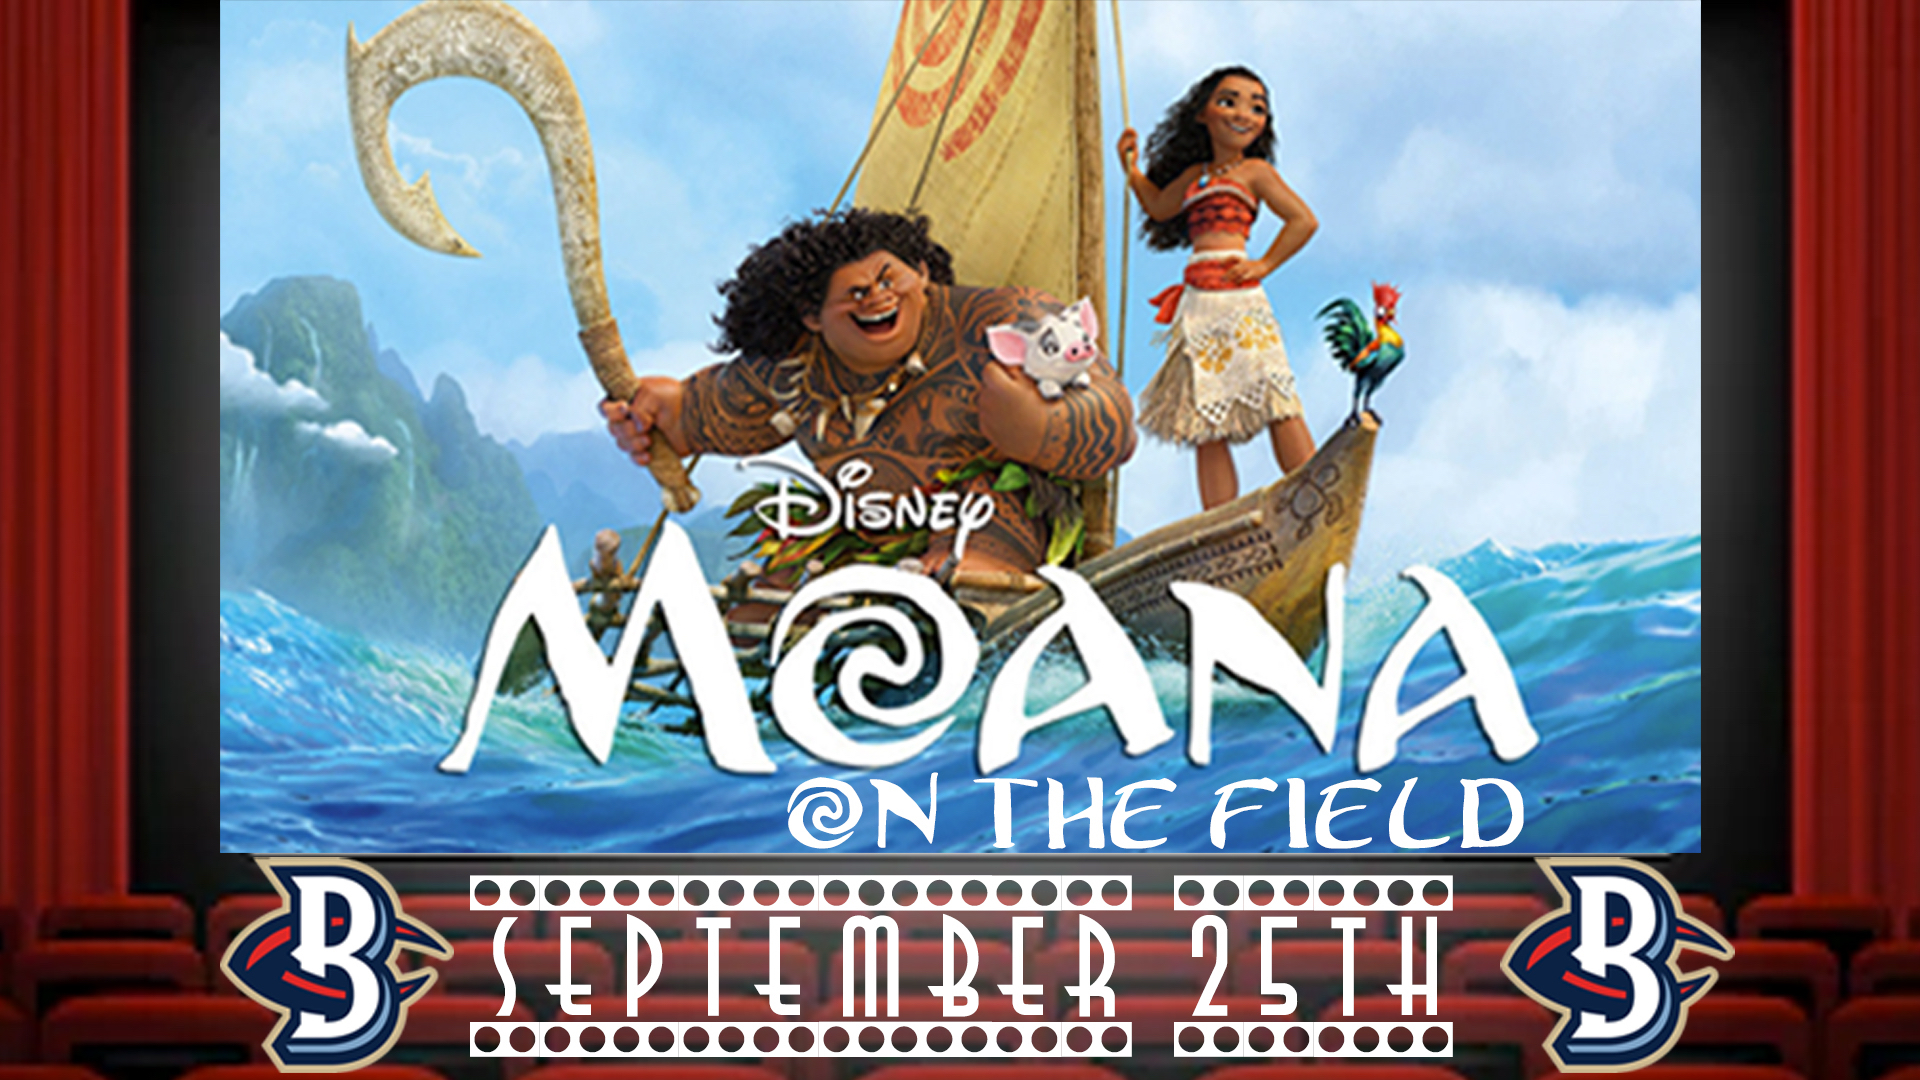 Blue Crabs Announce Disney's Moana as Family Movie Night on September 25th